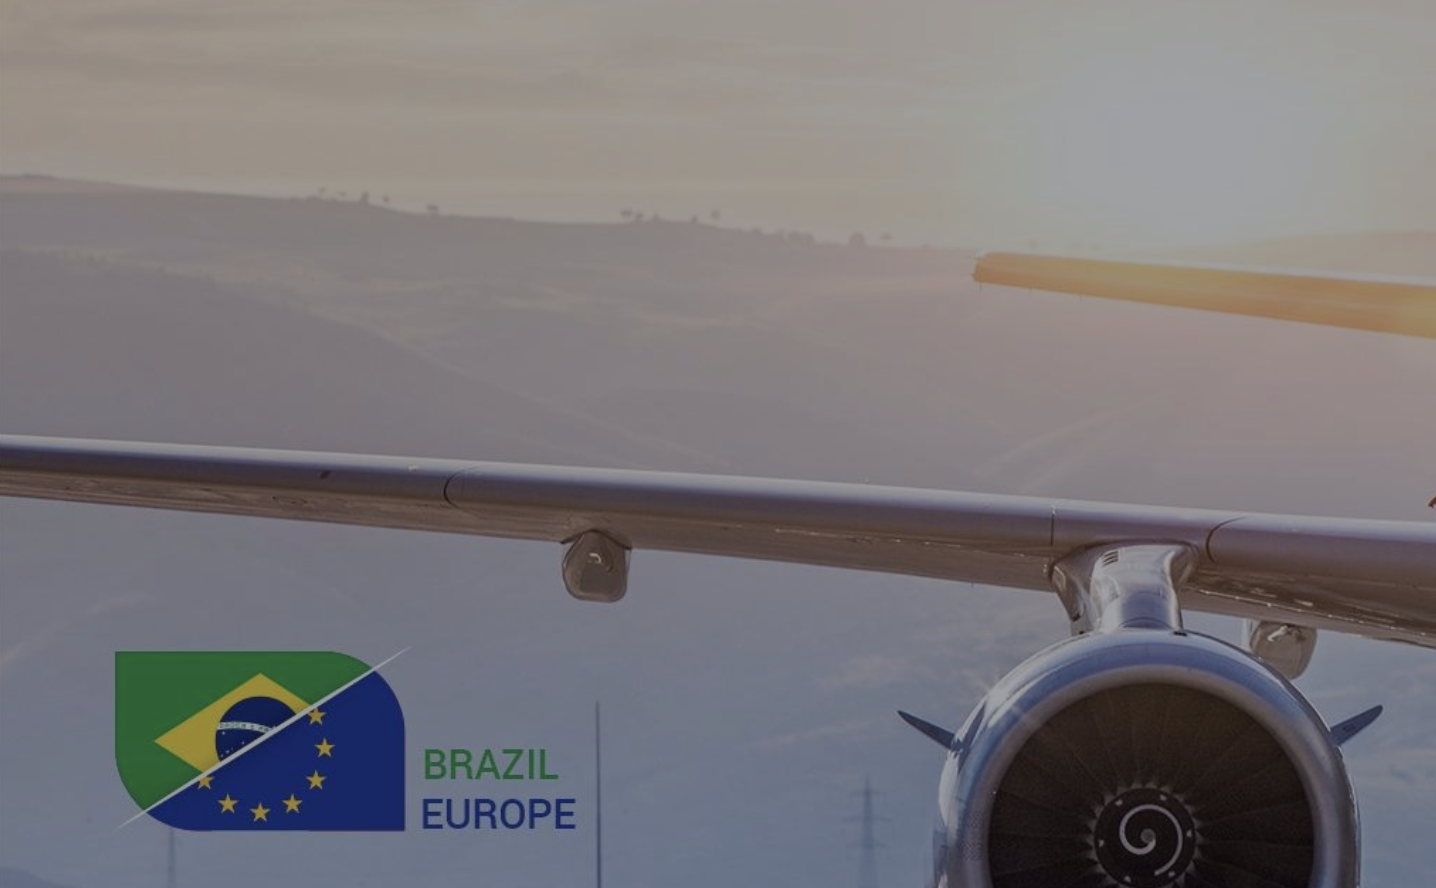 Europe - Brazil cooperation in Air Traffic Management